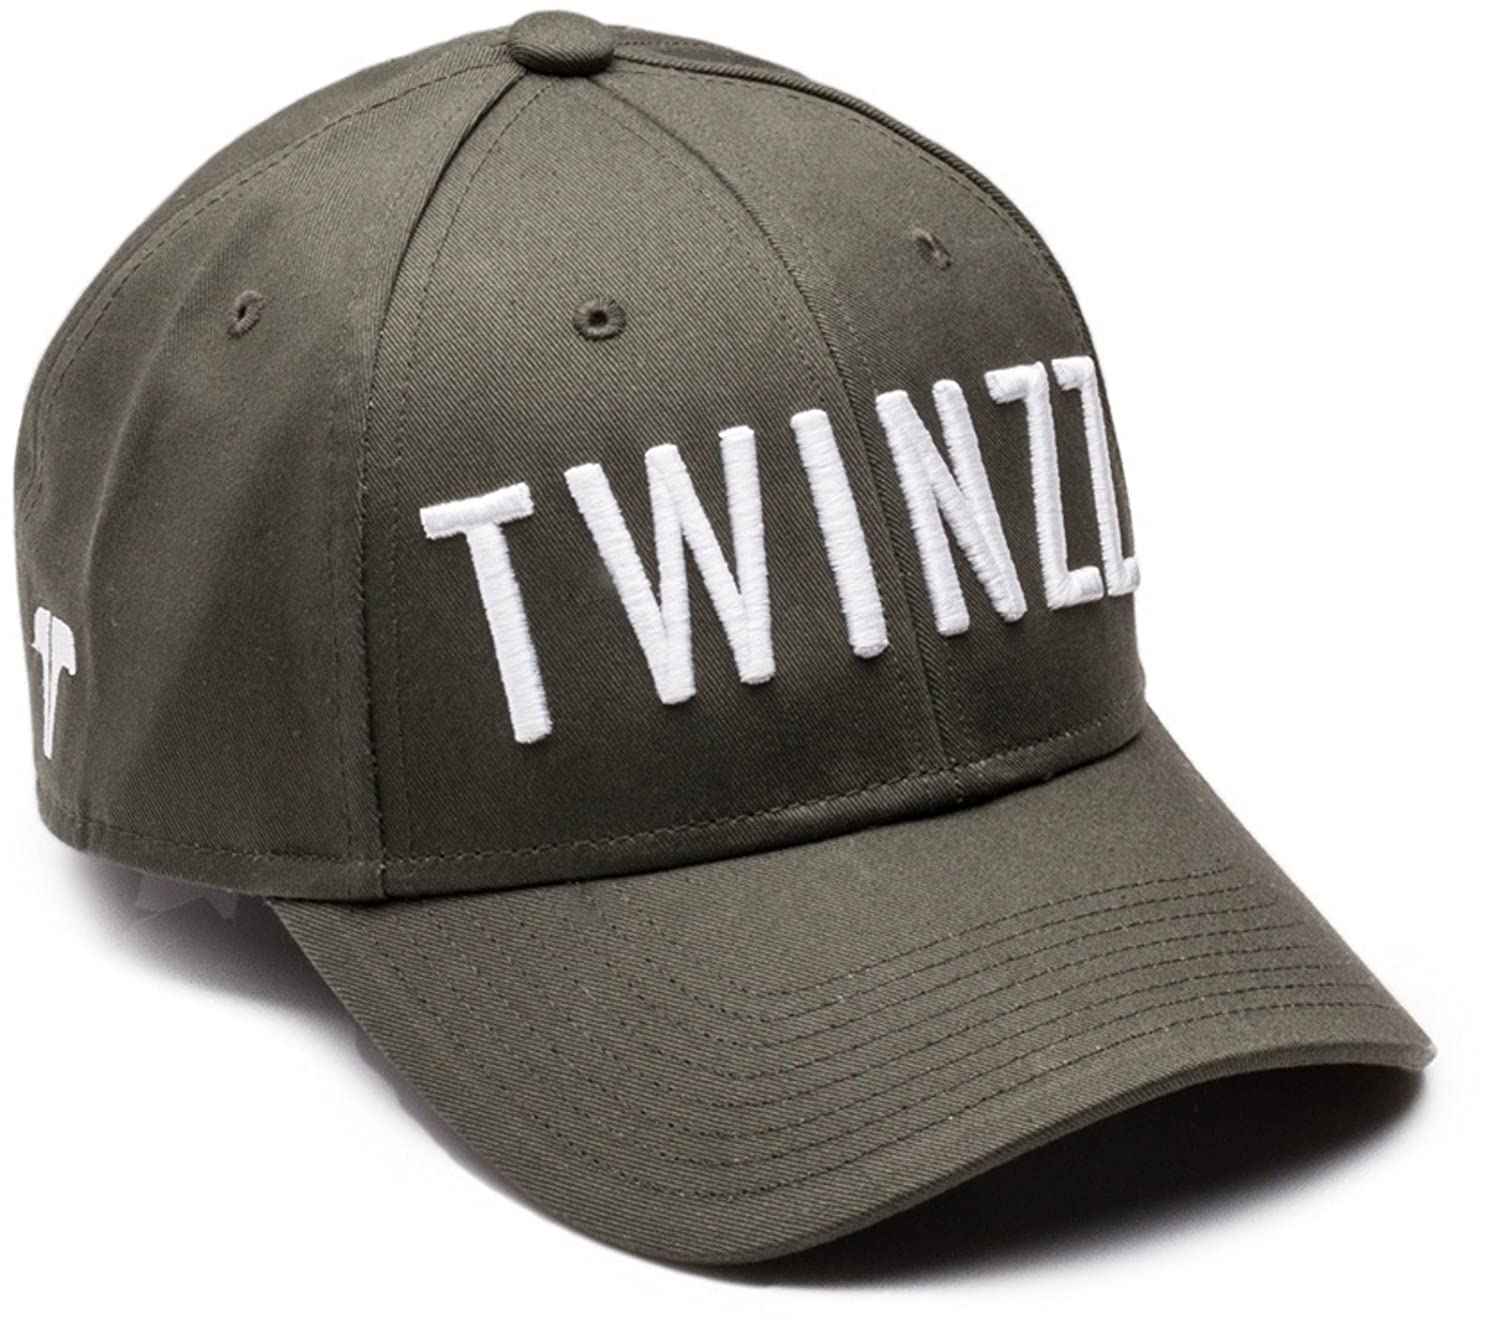 9e61256d7 Twinzz Harbor Adjustable Baseball Cap Khaki/White: Amazon.co.uk: Clothing